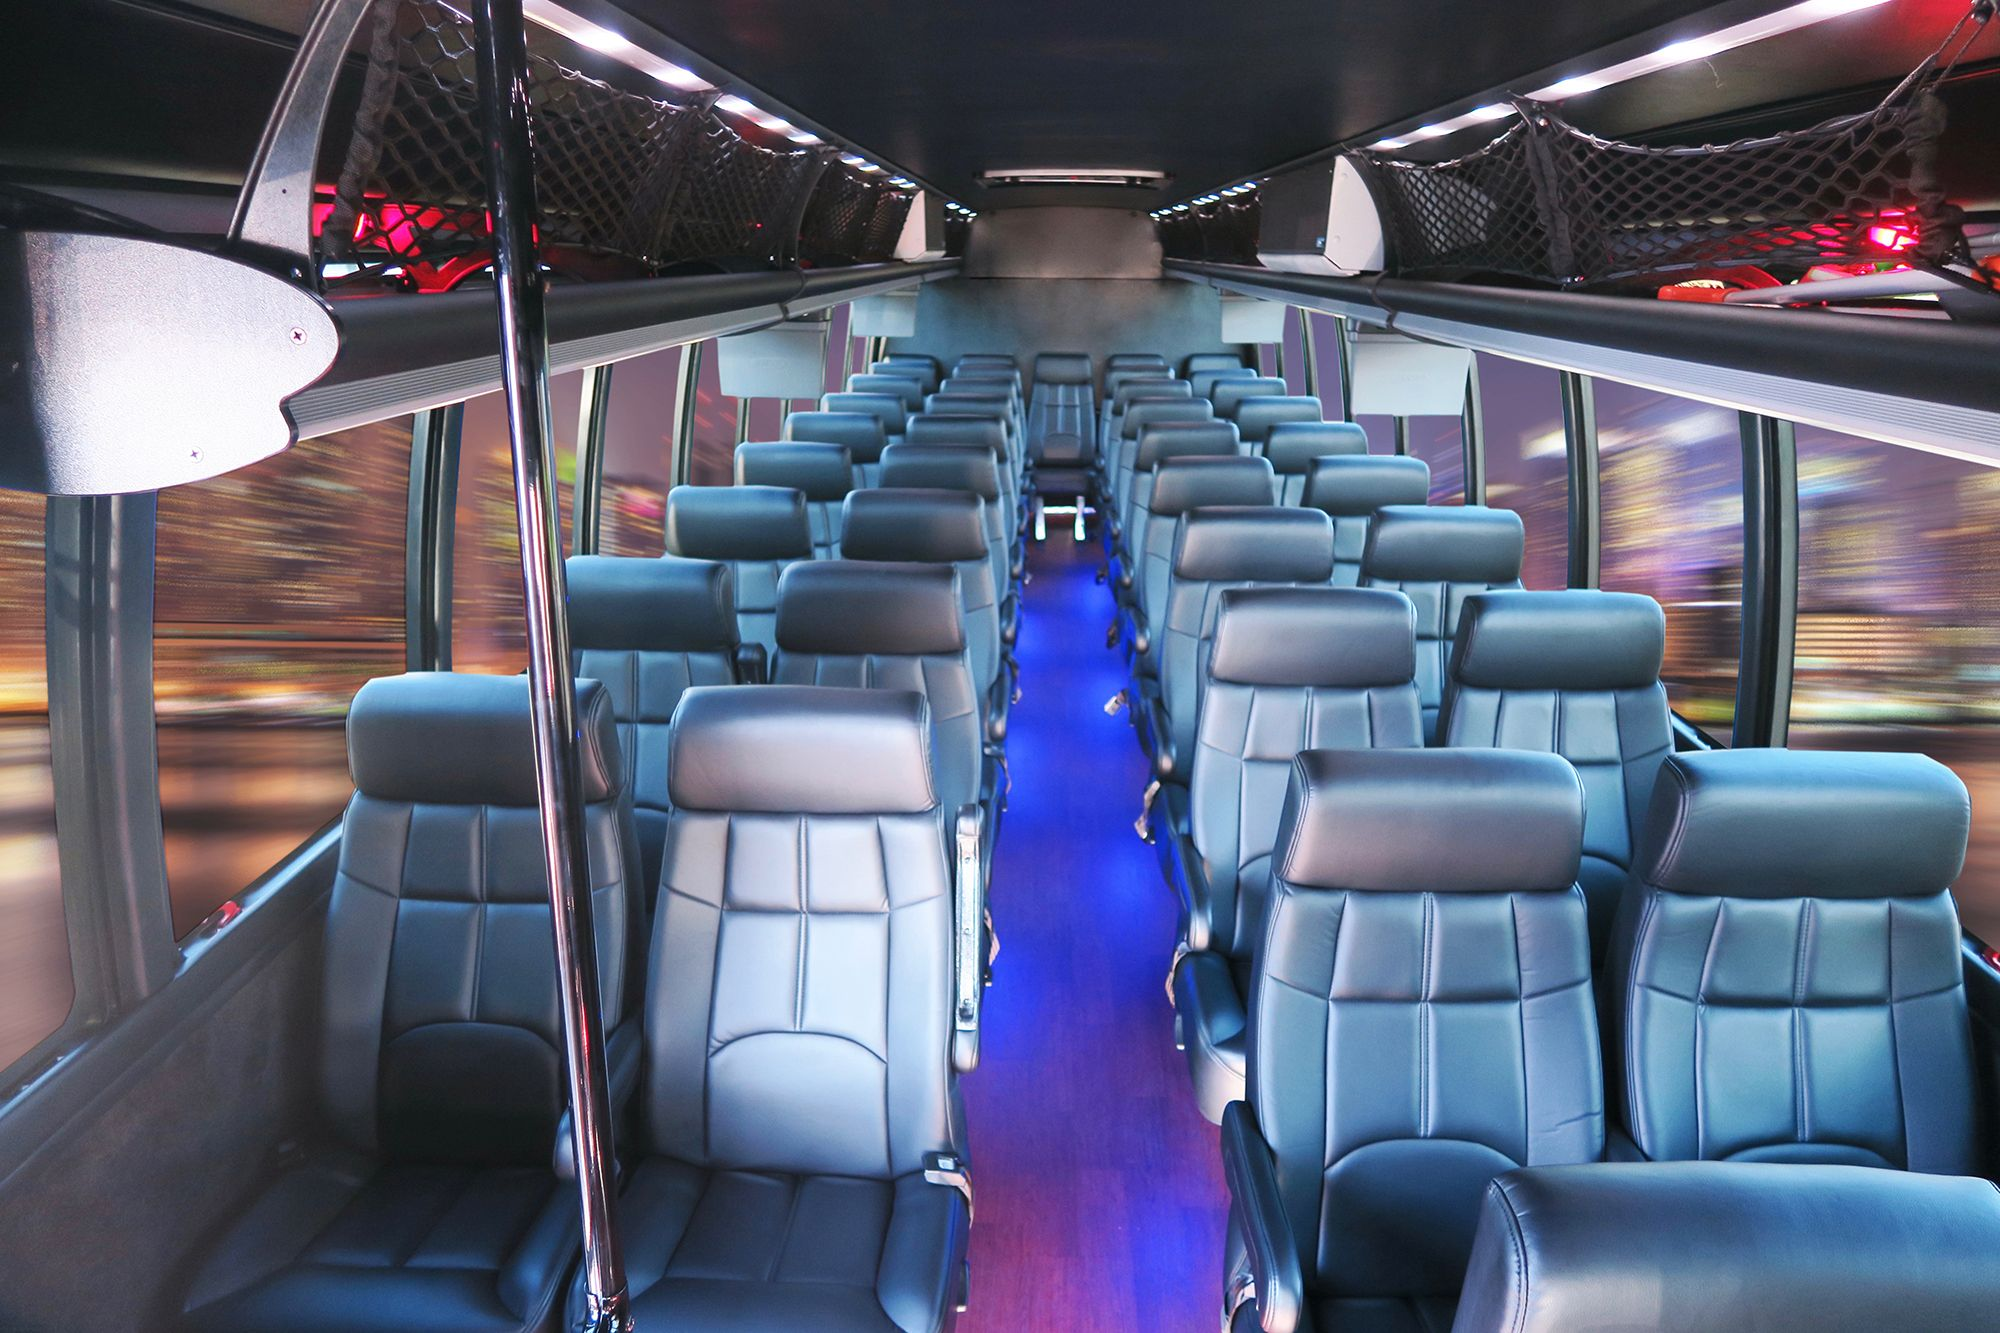 e09b286f9a Executive Coach Bus Seats 39 Passengers. Ideal for Large Corporate Groups  or Wedding Shuttle. Reclining Leather Seats with Armrests